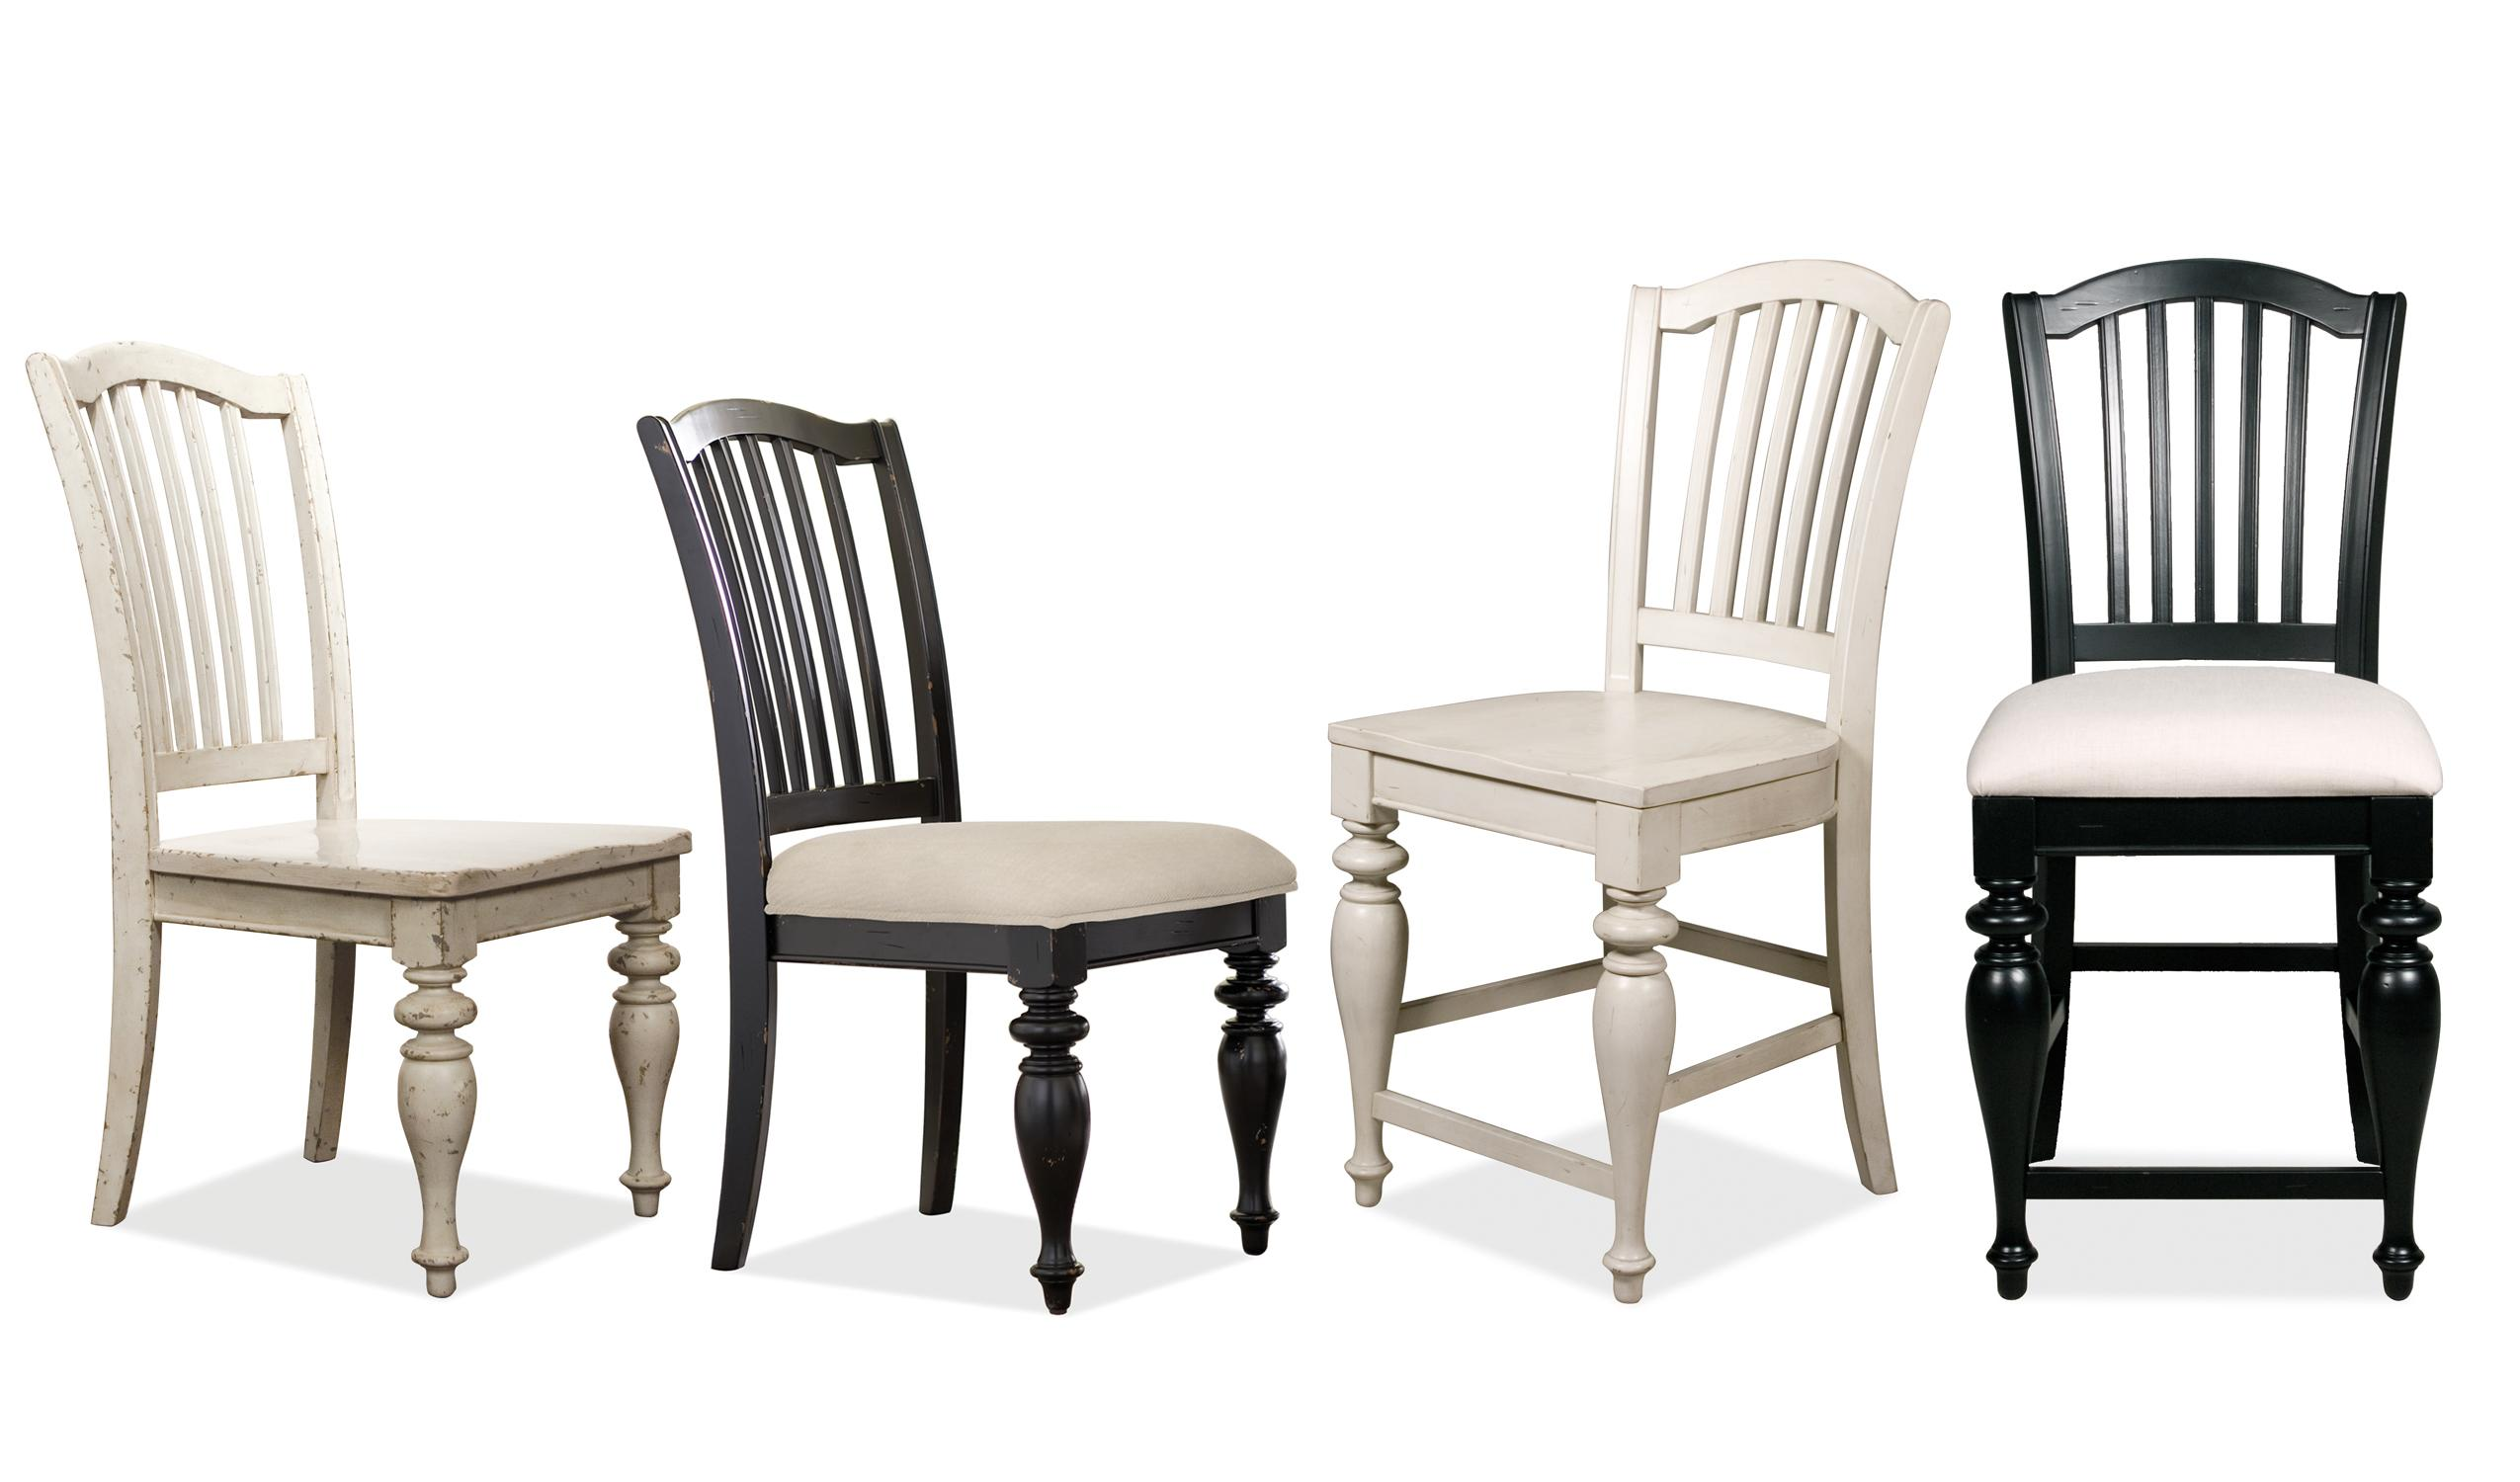 Riverside Furniture Mix N Match Chairs Counter Height